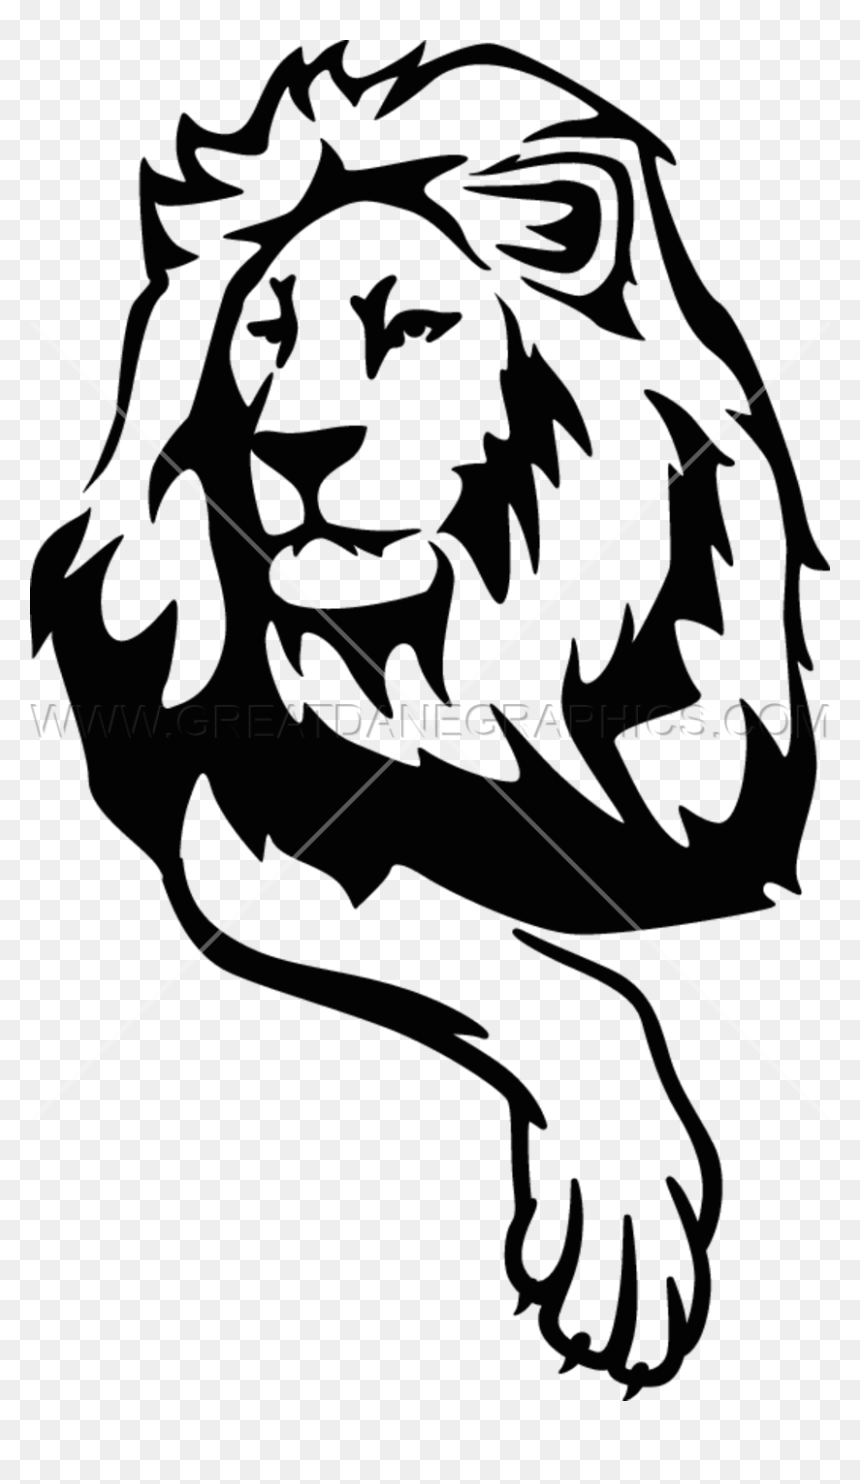 Transparent Lions Head Png Black And White Lion Clipart Png Download Vhv Lion face outline drawing at getdrawings free lion face silhouette, download free clip art, free clip art on clipart library lions head profile black outline stock illustration transparent lions head png black and